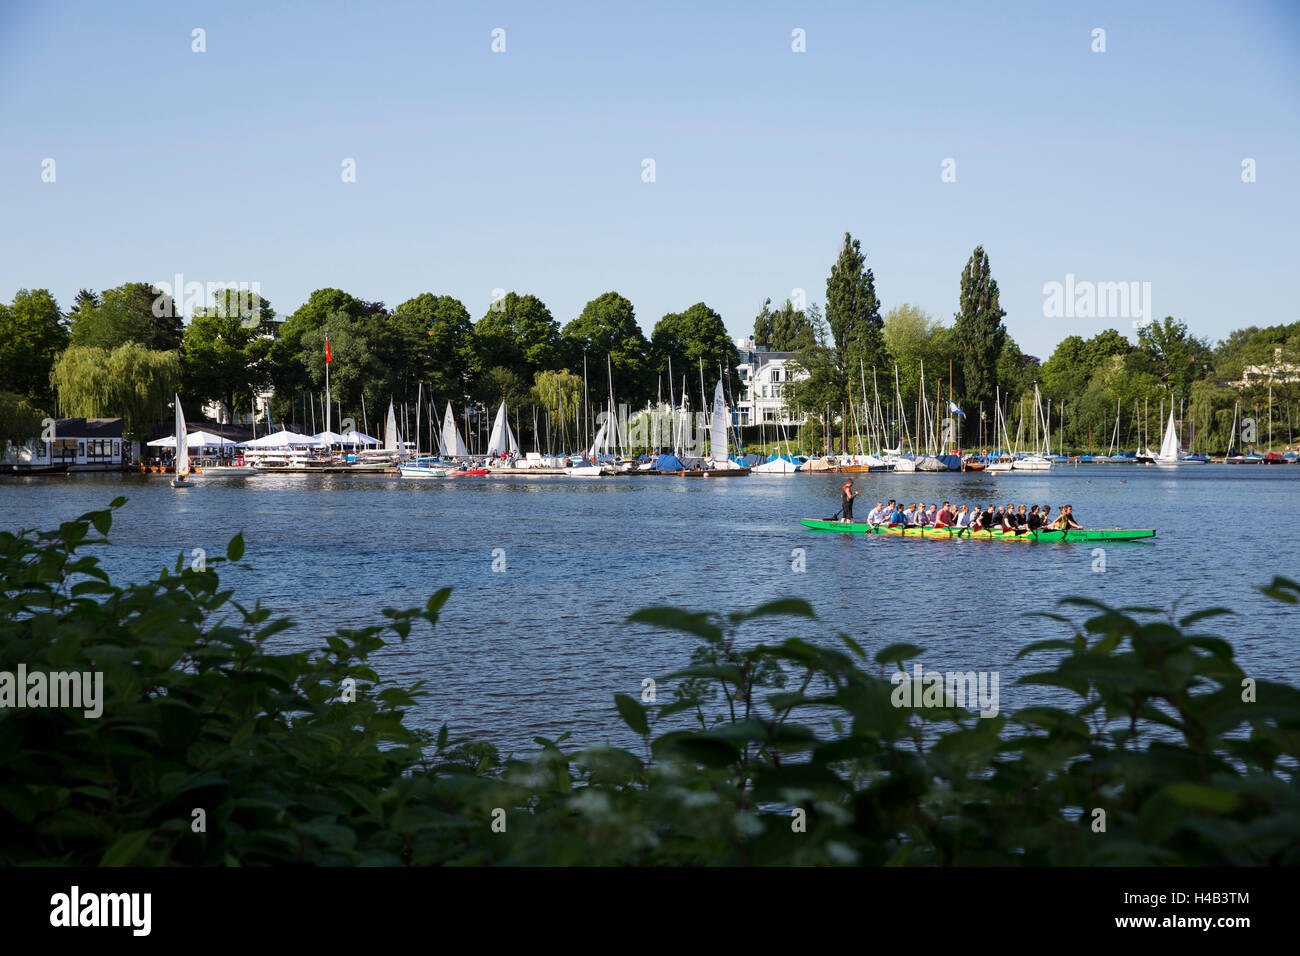 The Outer Alster lake with Bobby Reich in Hamburg, Germany - Stock Image